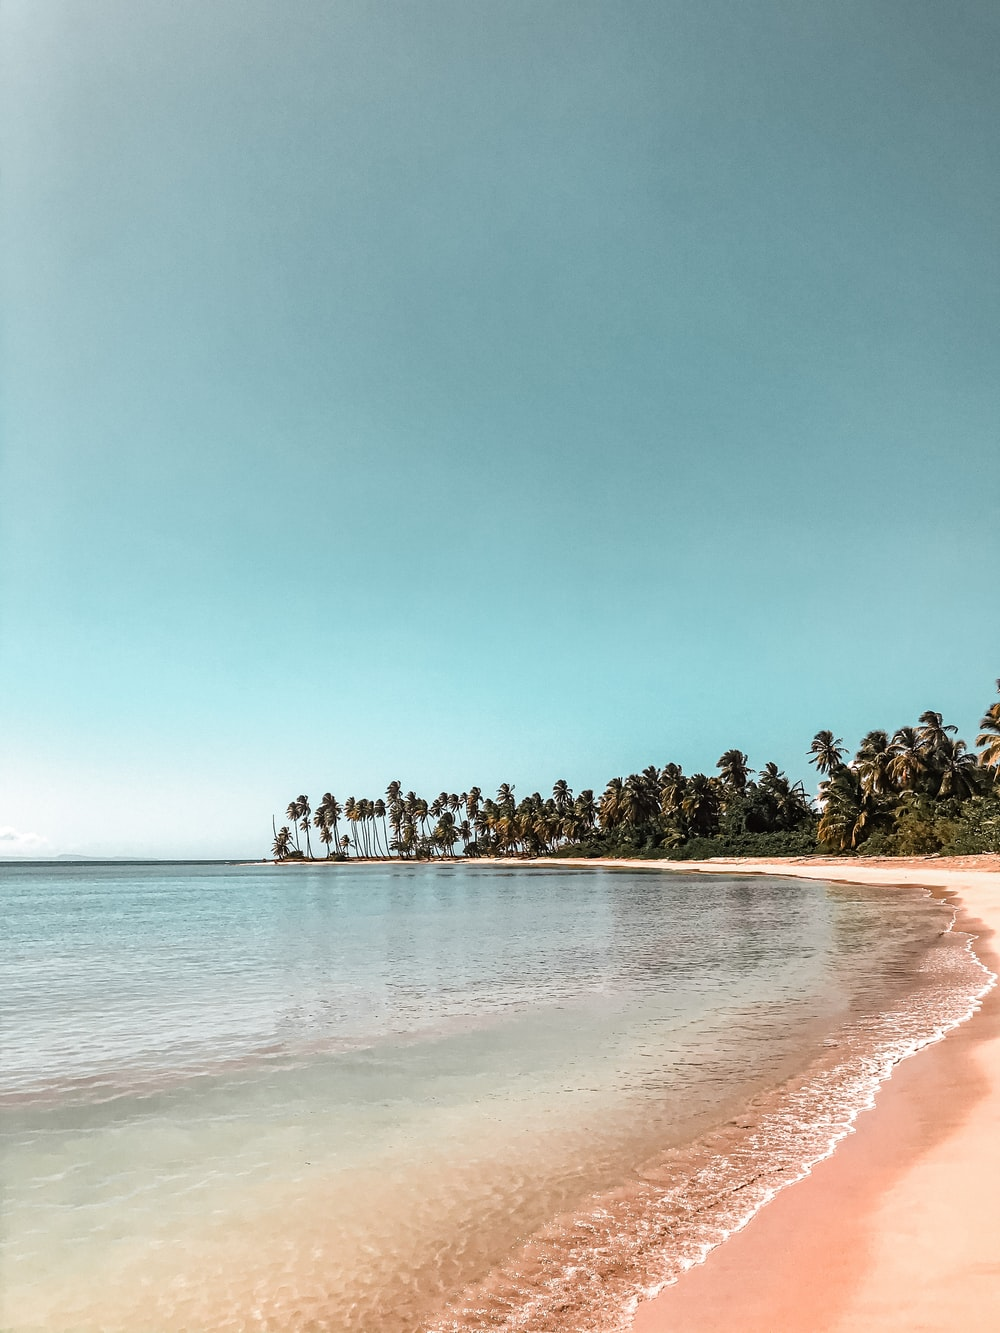 green trees on brown sand beach during daytime